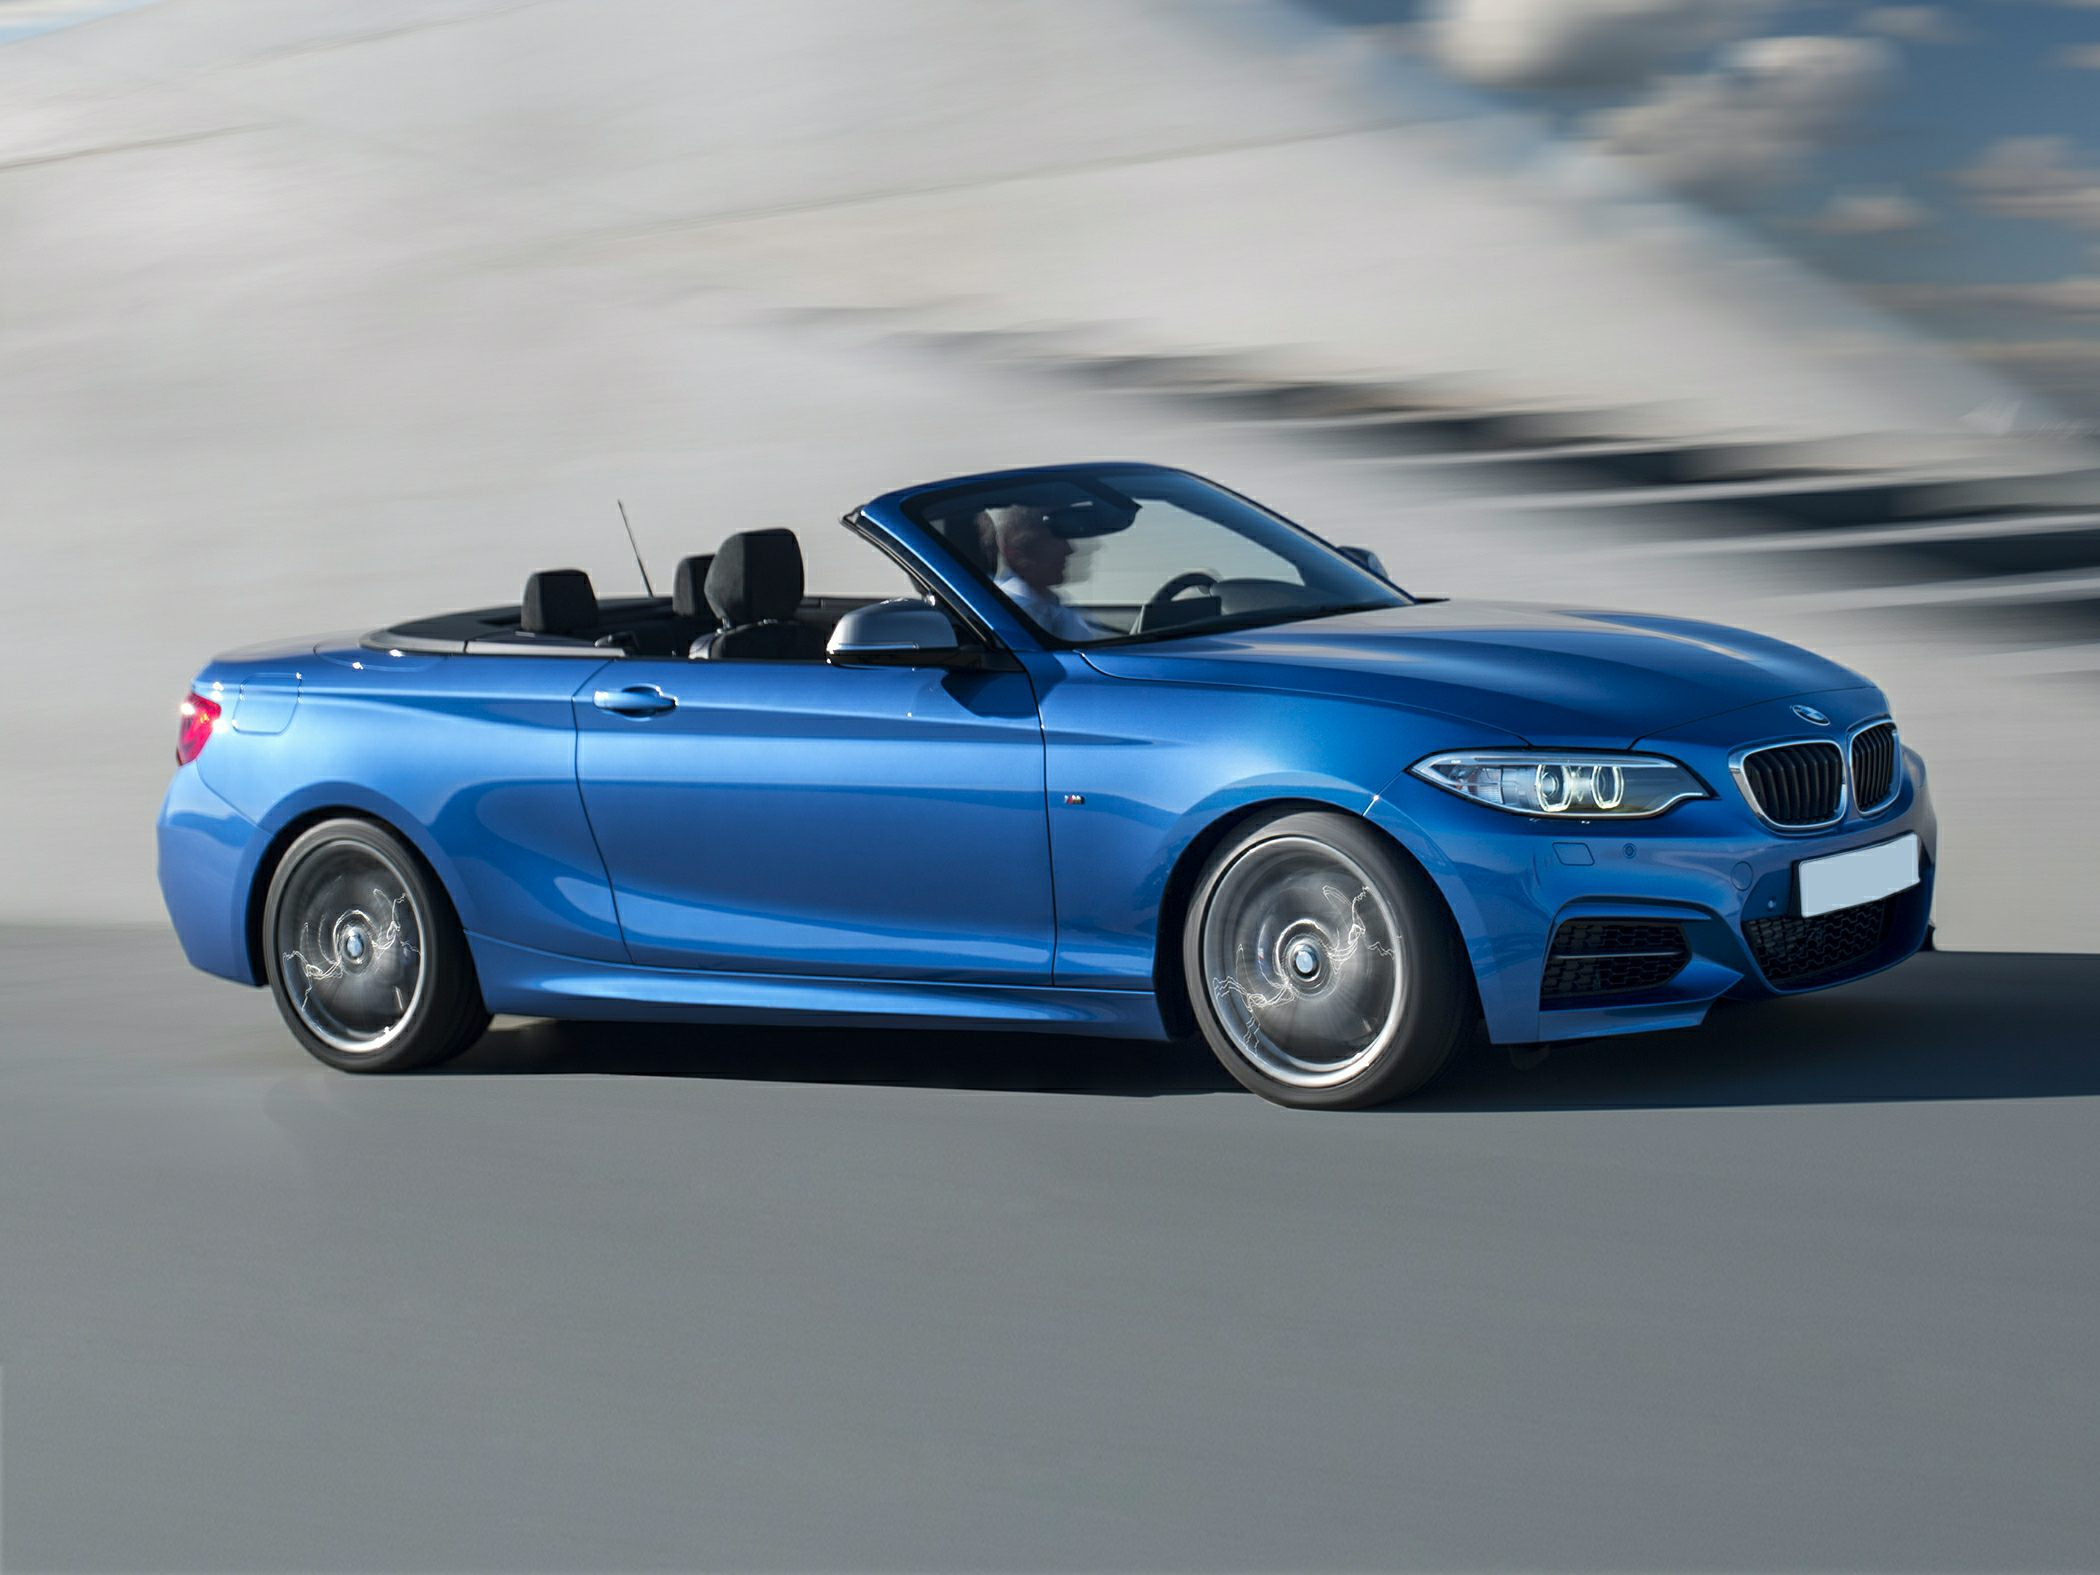 2018 BMW M235i Convertible photo - 4